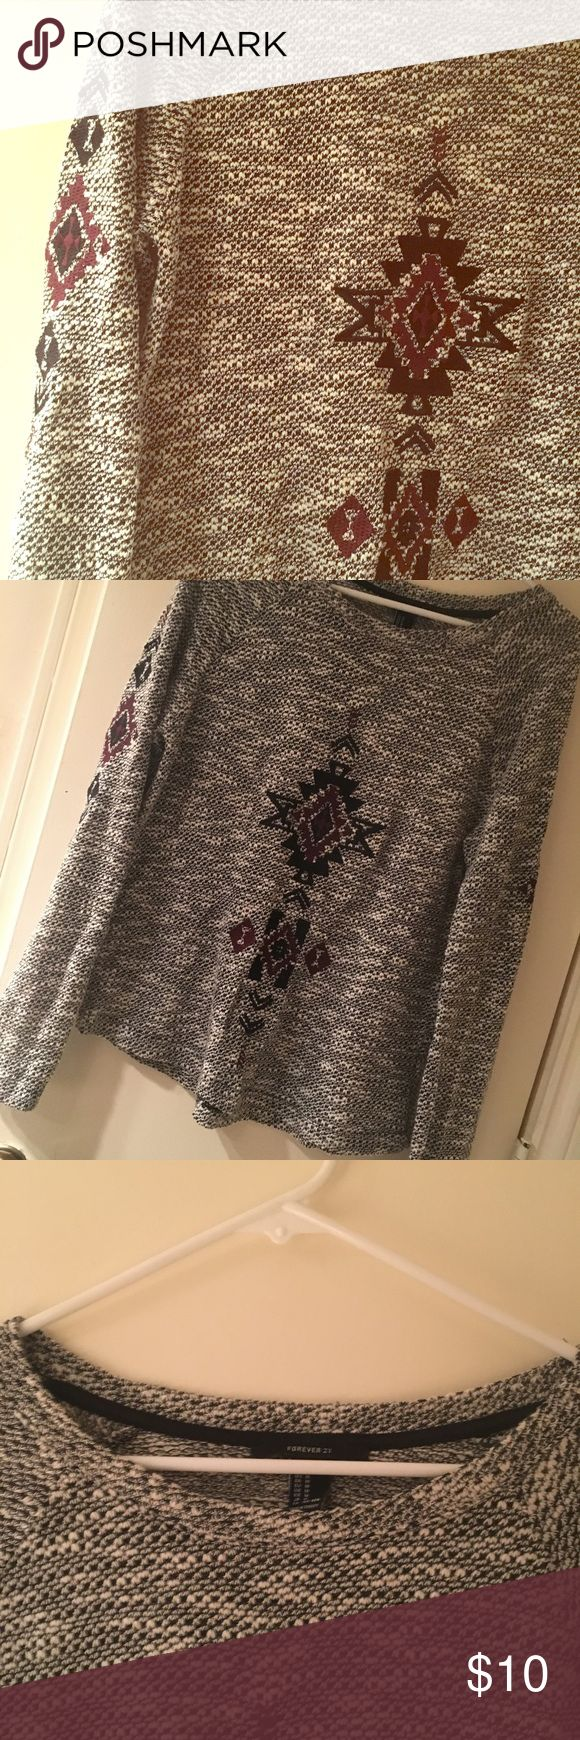 🌹TRIBAL PRINT SWEATER 🌹 Grey sweater with tribal pattern. Great condition! Light weight.   ▪️maroon and black tribal pattern on heathered grey sweater Forever 21 Sweaters Crew & Scoop Necks